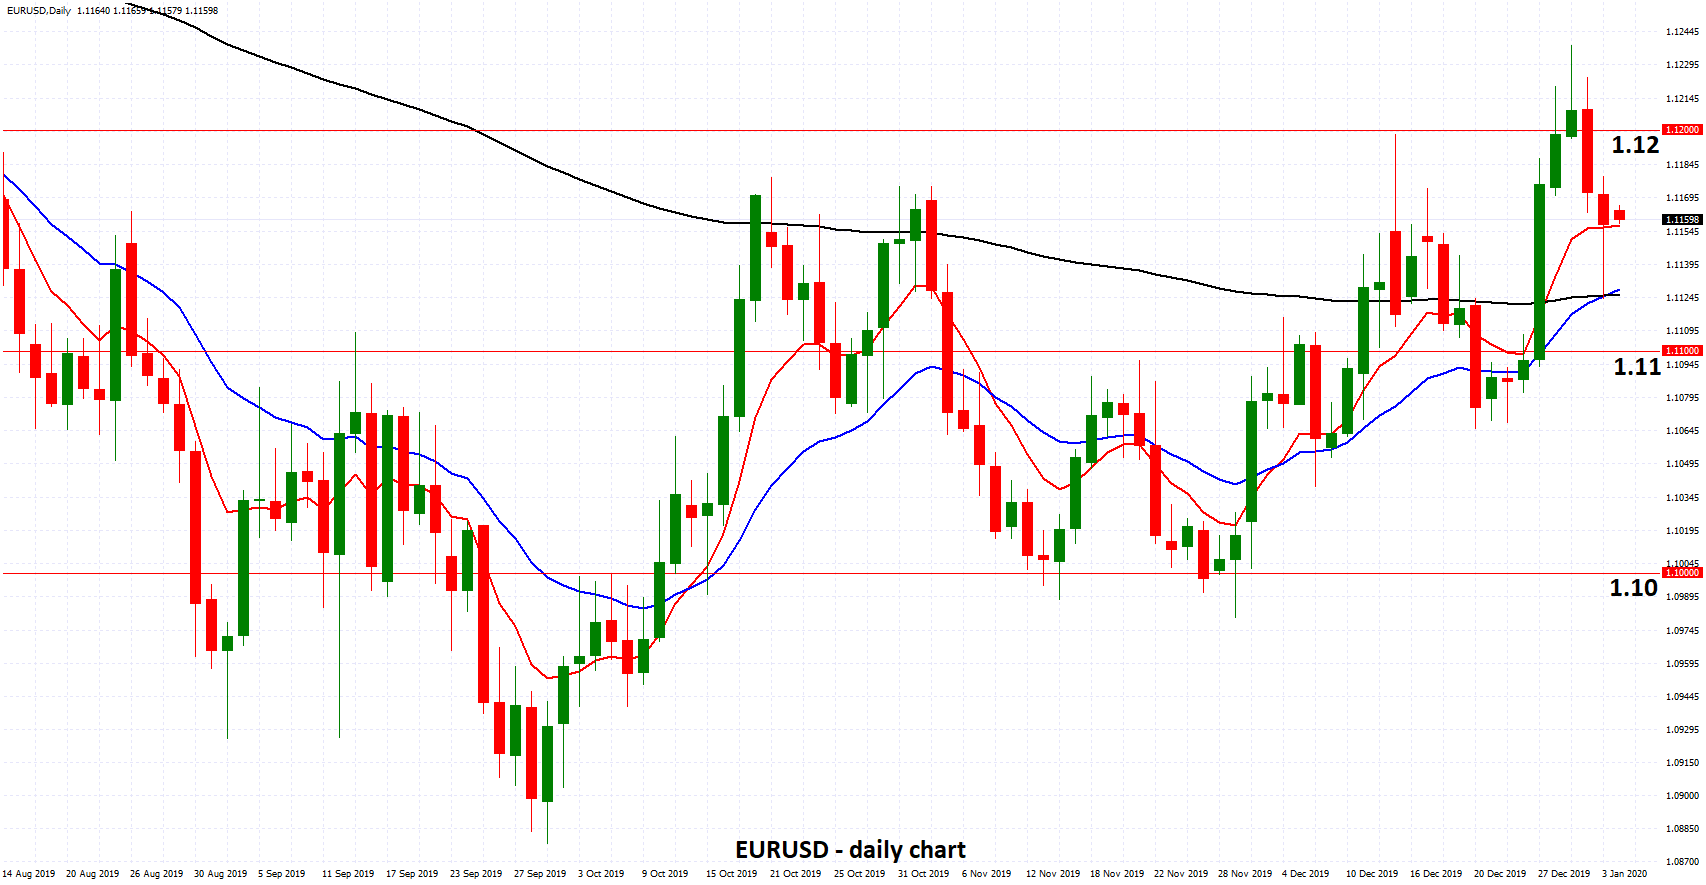 EURUSD - Settles Below 1.12 after Warnings over Low Rates